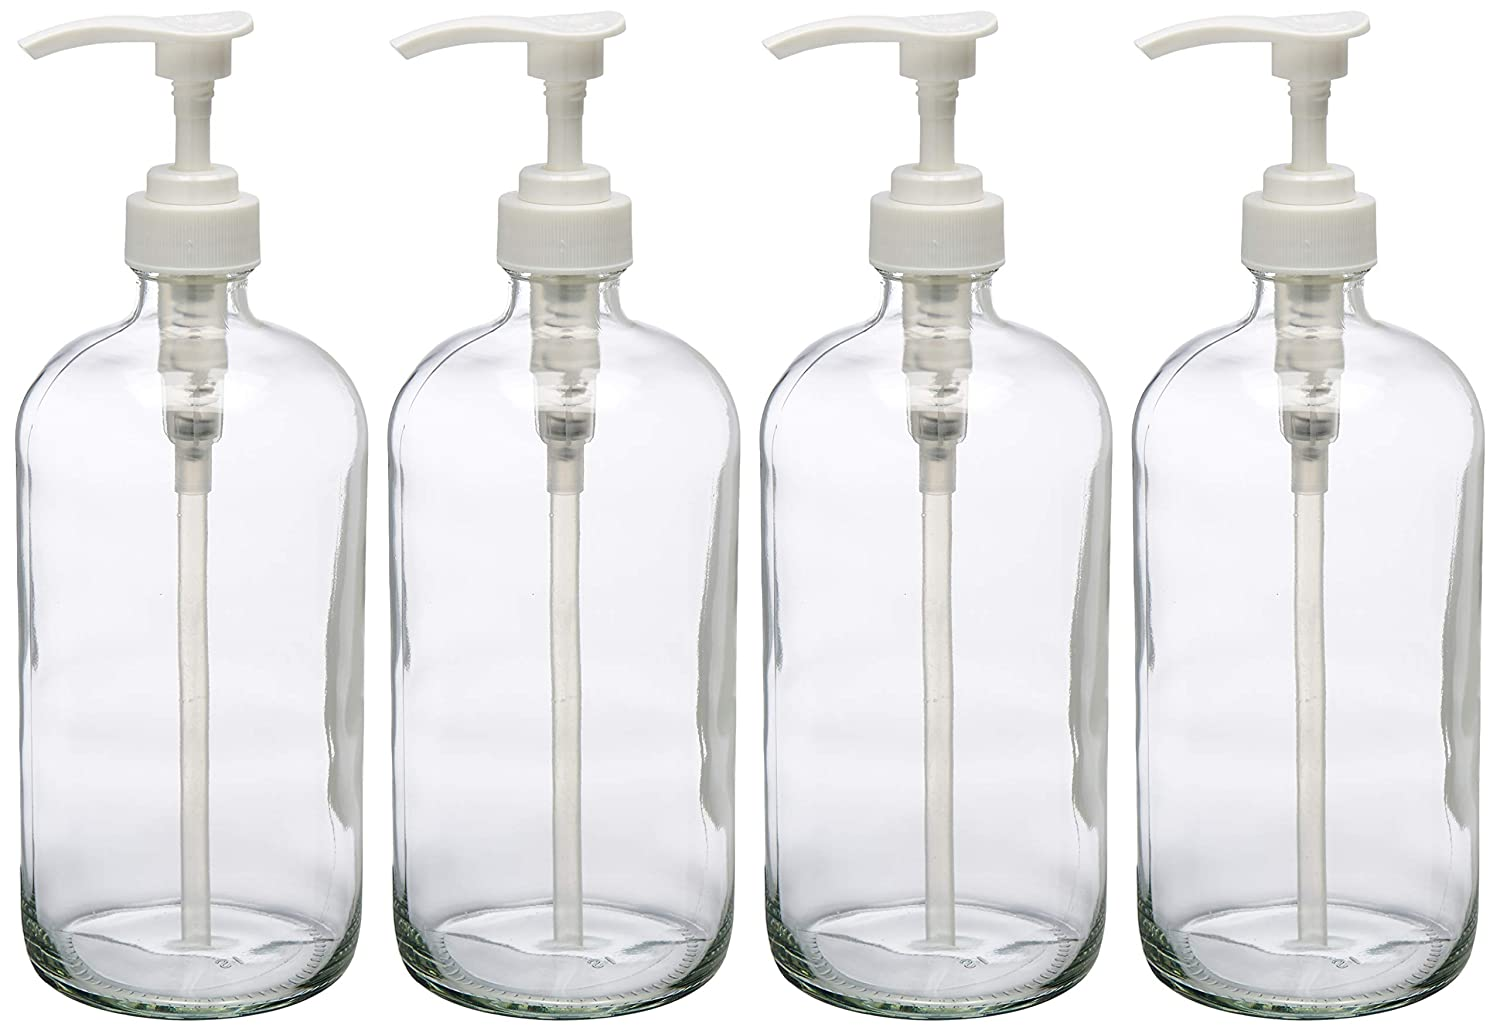 32 Ounce Large Clear Glass Boston Round Bottles with White Pumps. Great for Lotions, Soaps, Oils, Sauces and DIY Laundry Detergent - Food Safe and Medical Grade - by kitchentoolz (Pack of 4)